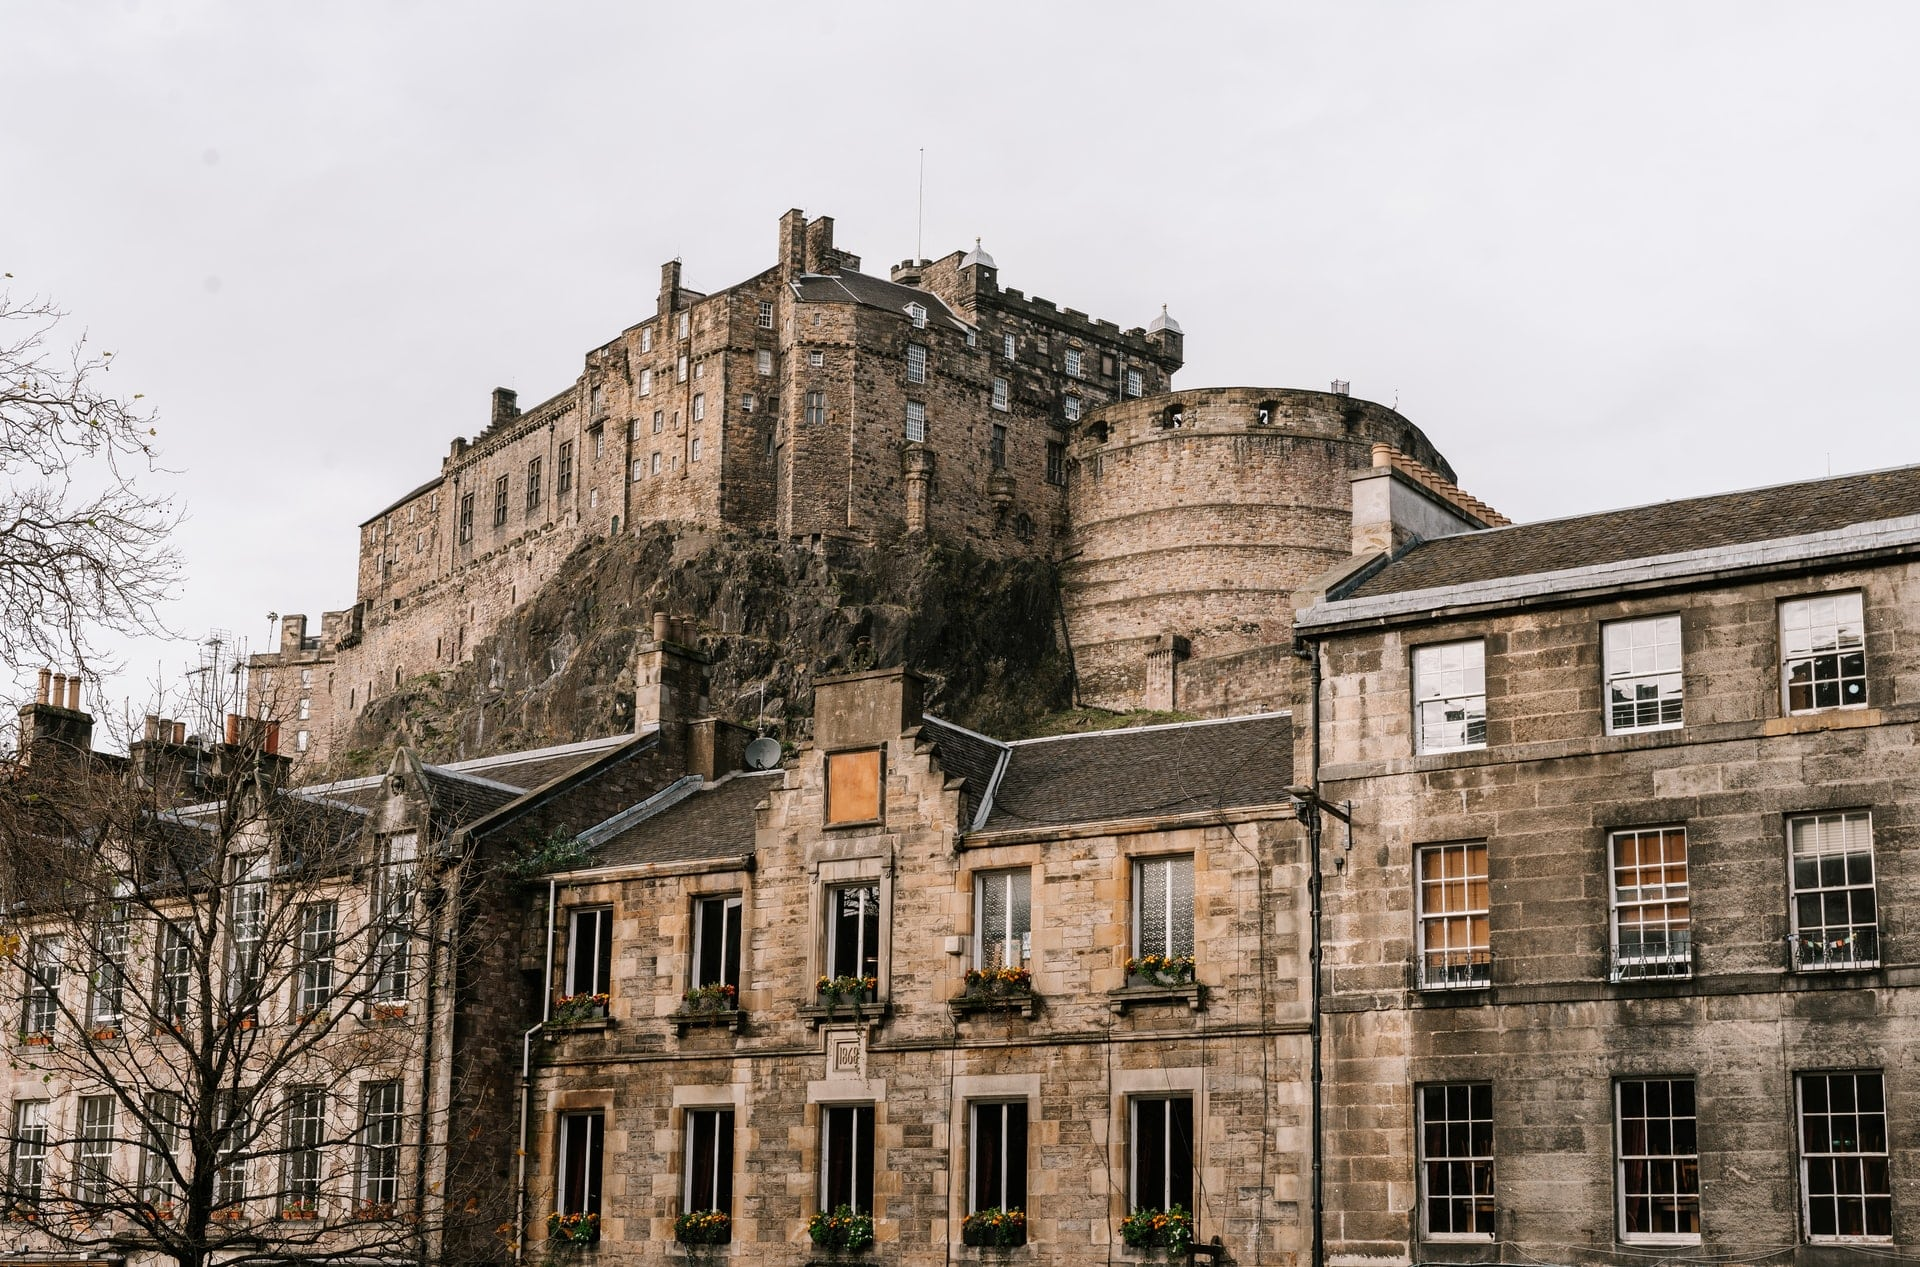 view-of-edinburgh-castle-from-grassmarket-on-a-grey-day-old-historic-buildings